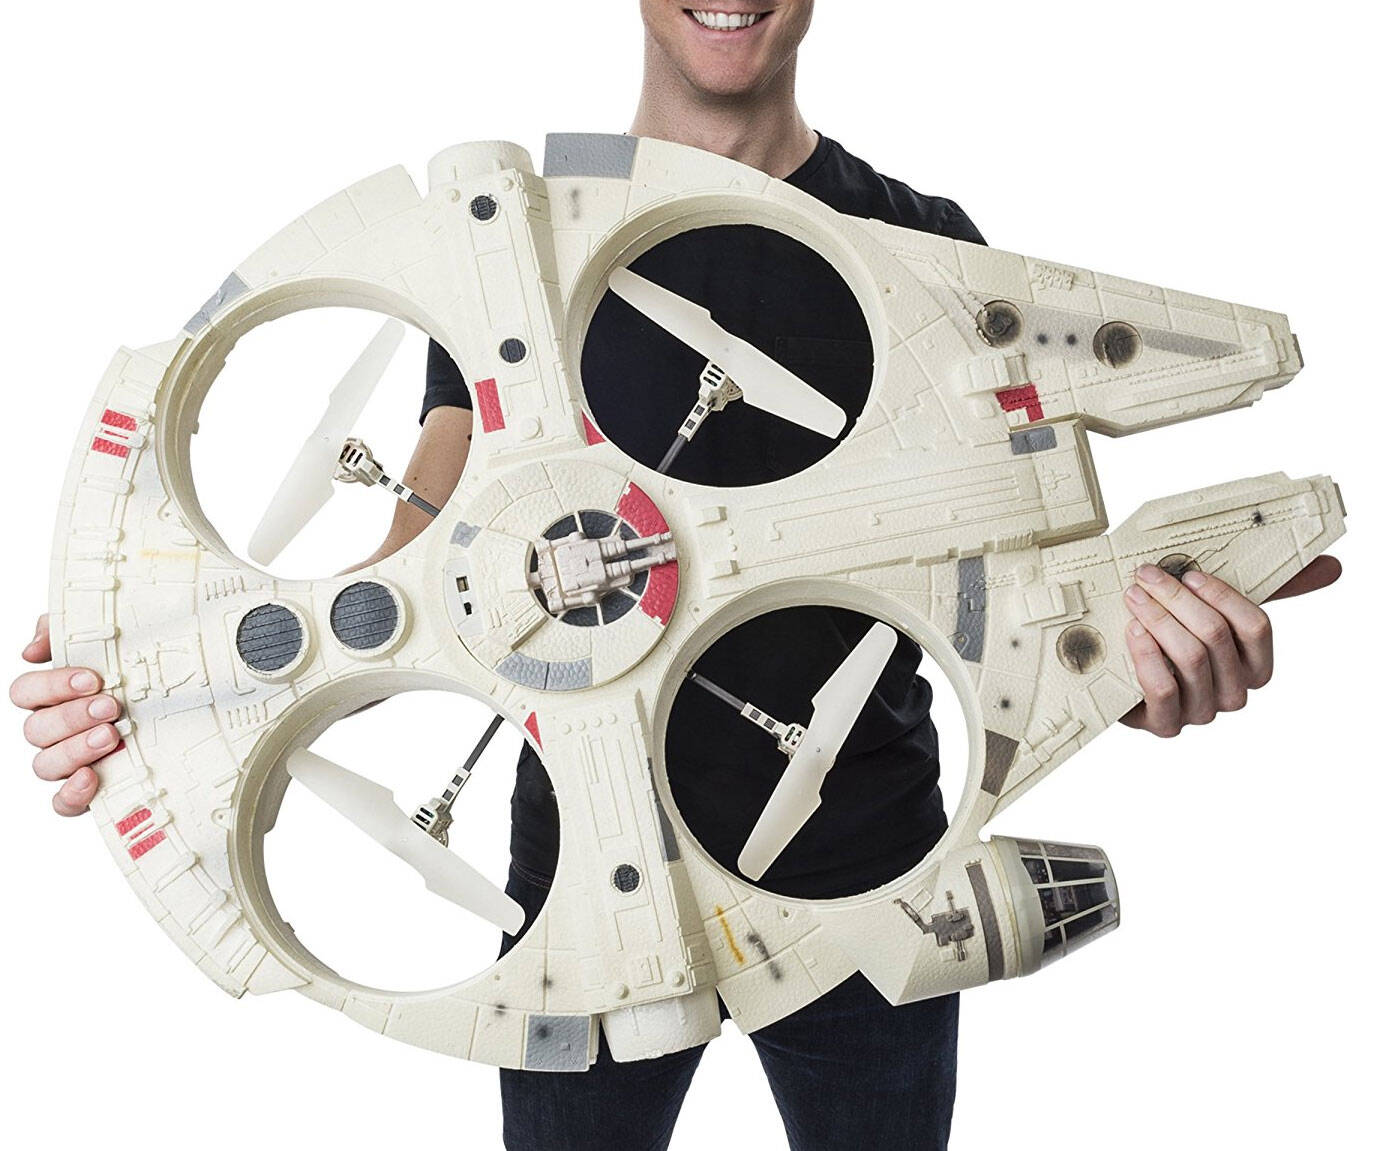 Giant Flying Millennium Falcon Drone - http://coolthings.us